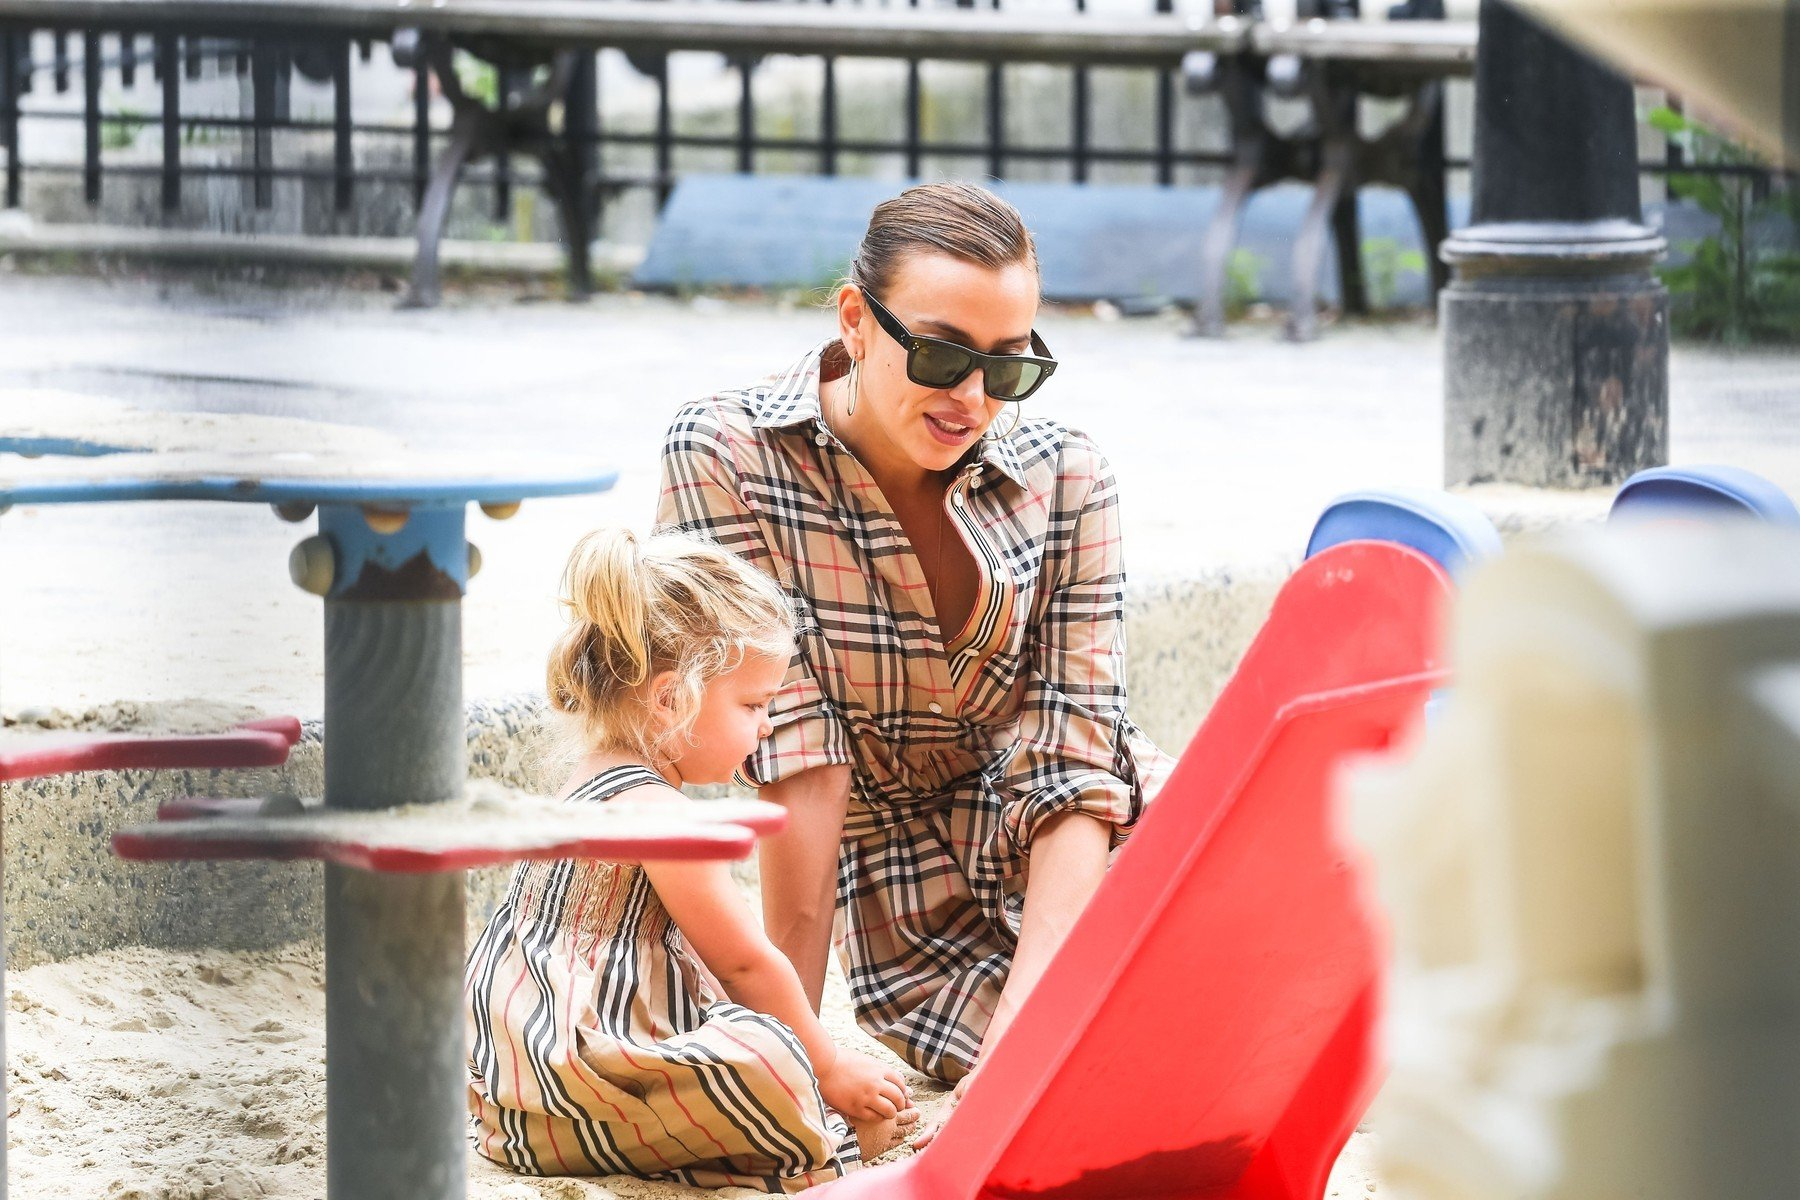 New York, NY  - Irina Shayk enjoys time with her daughter after breaking up with Bradley Cooper. The duo are seen enjoying their day at the park together.  *UK Clients - Pictures Containing Children Please Pixelate Face Prior To Publication*, Image: 448732725, License: Rights-managed, Restrictions: , Model Release: no, Credit line: Profimedia, Backgrid USA